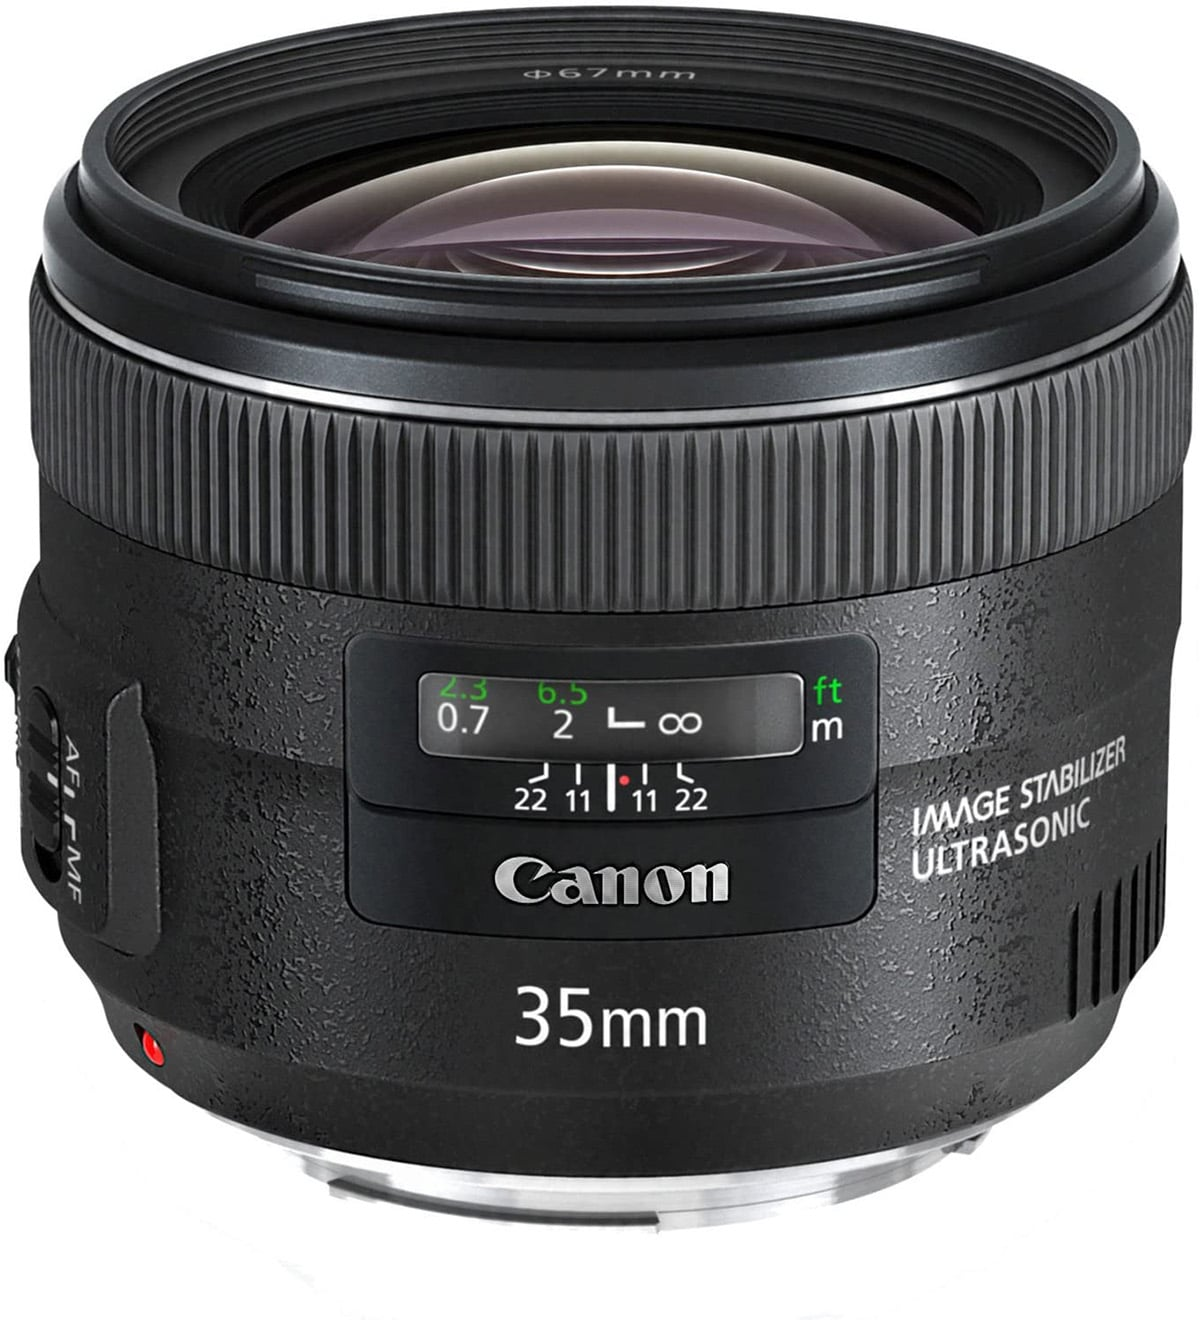 Canon EF 35mm f2 IS USM Wide Angle Lens